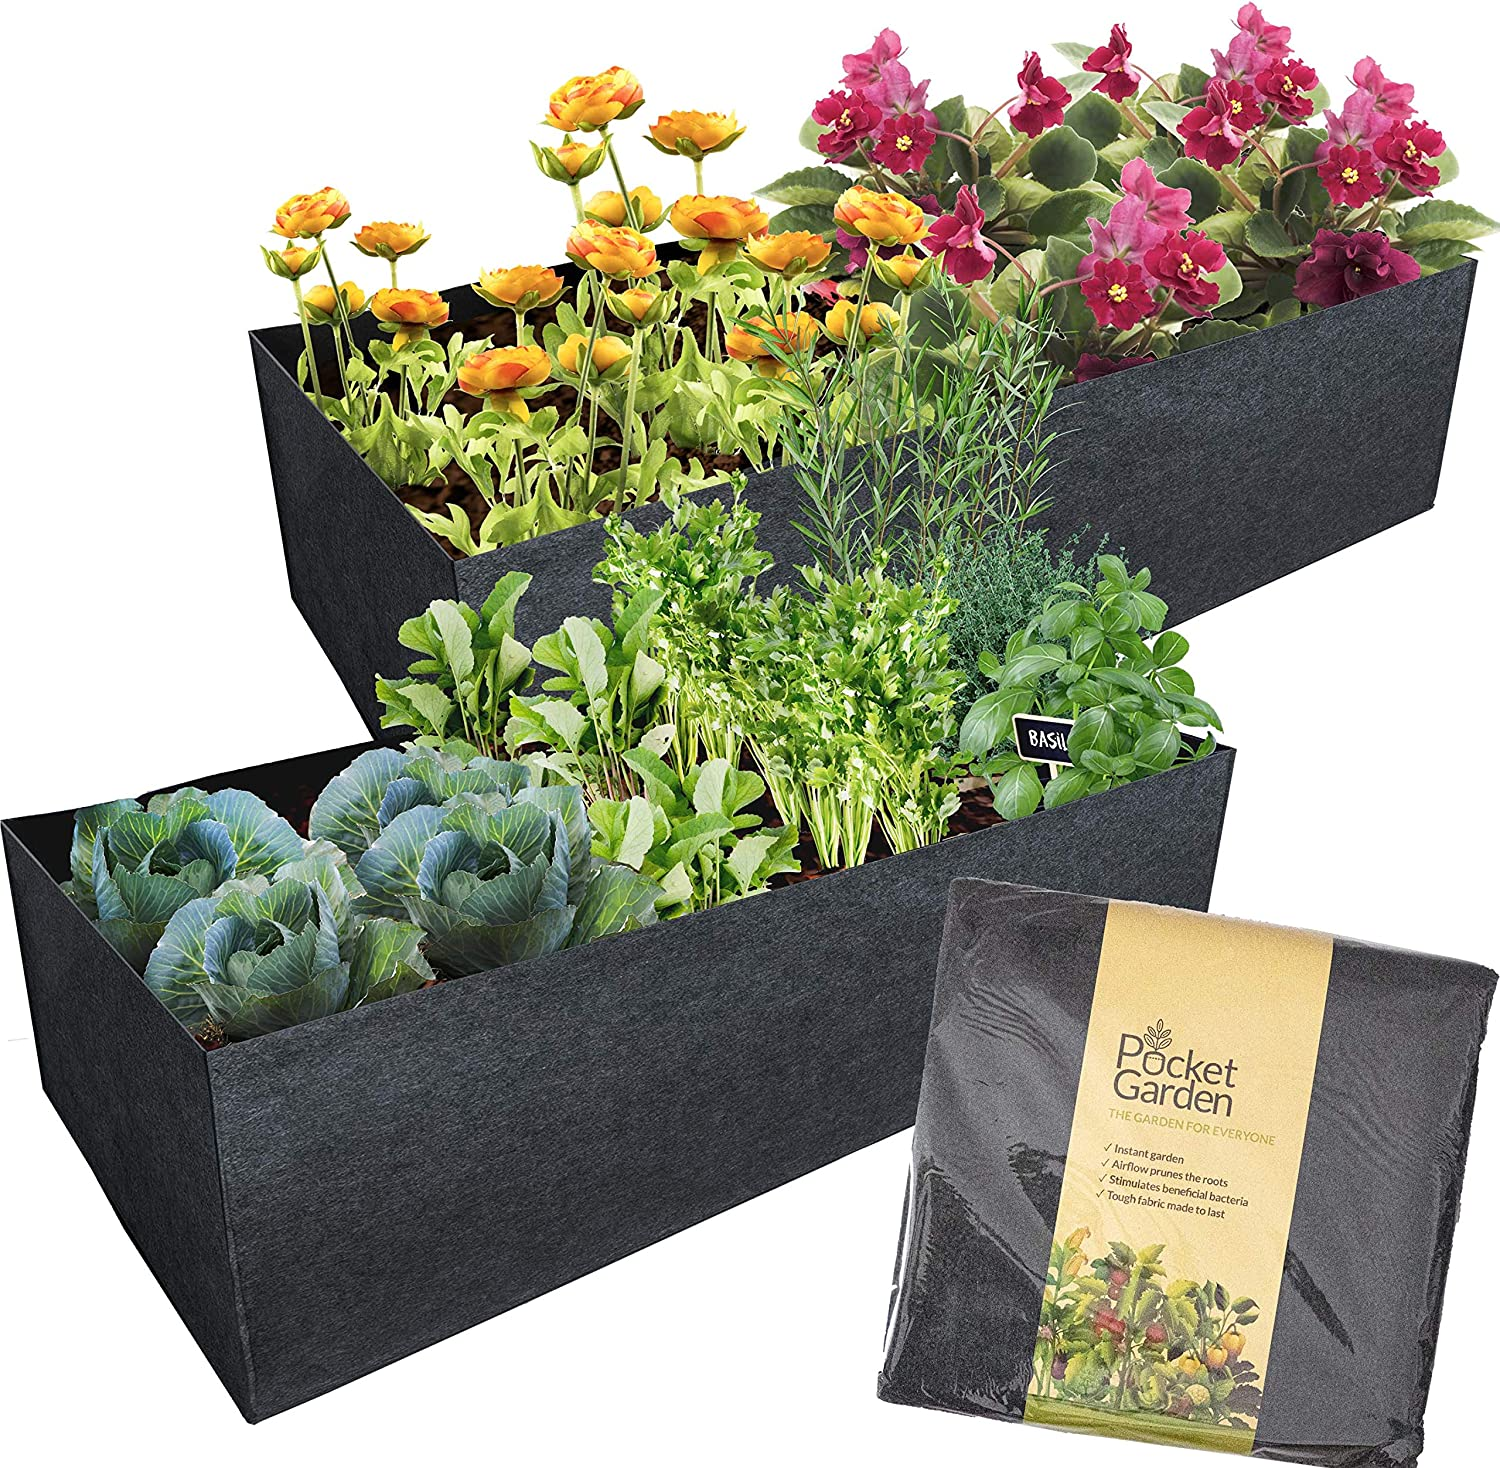 Pocket Garden Fabric Raised Bed Planter - Felt Container 24 x 48 Inches Nonwoven Materials, Perfect For Growing Plants, Flowers And Vegetables - For Small Space Balcony - Rectangle Size (Pack of 2)